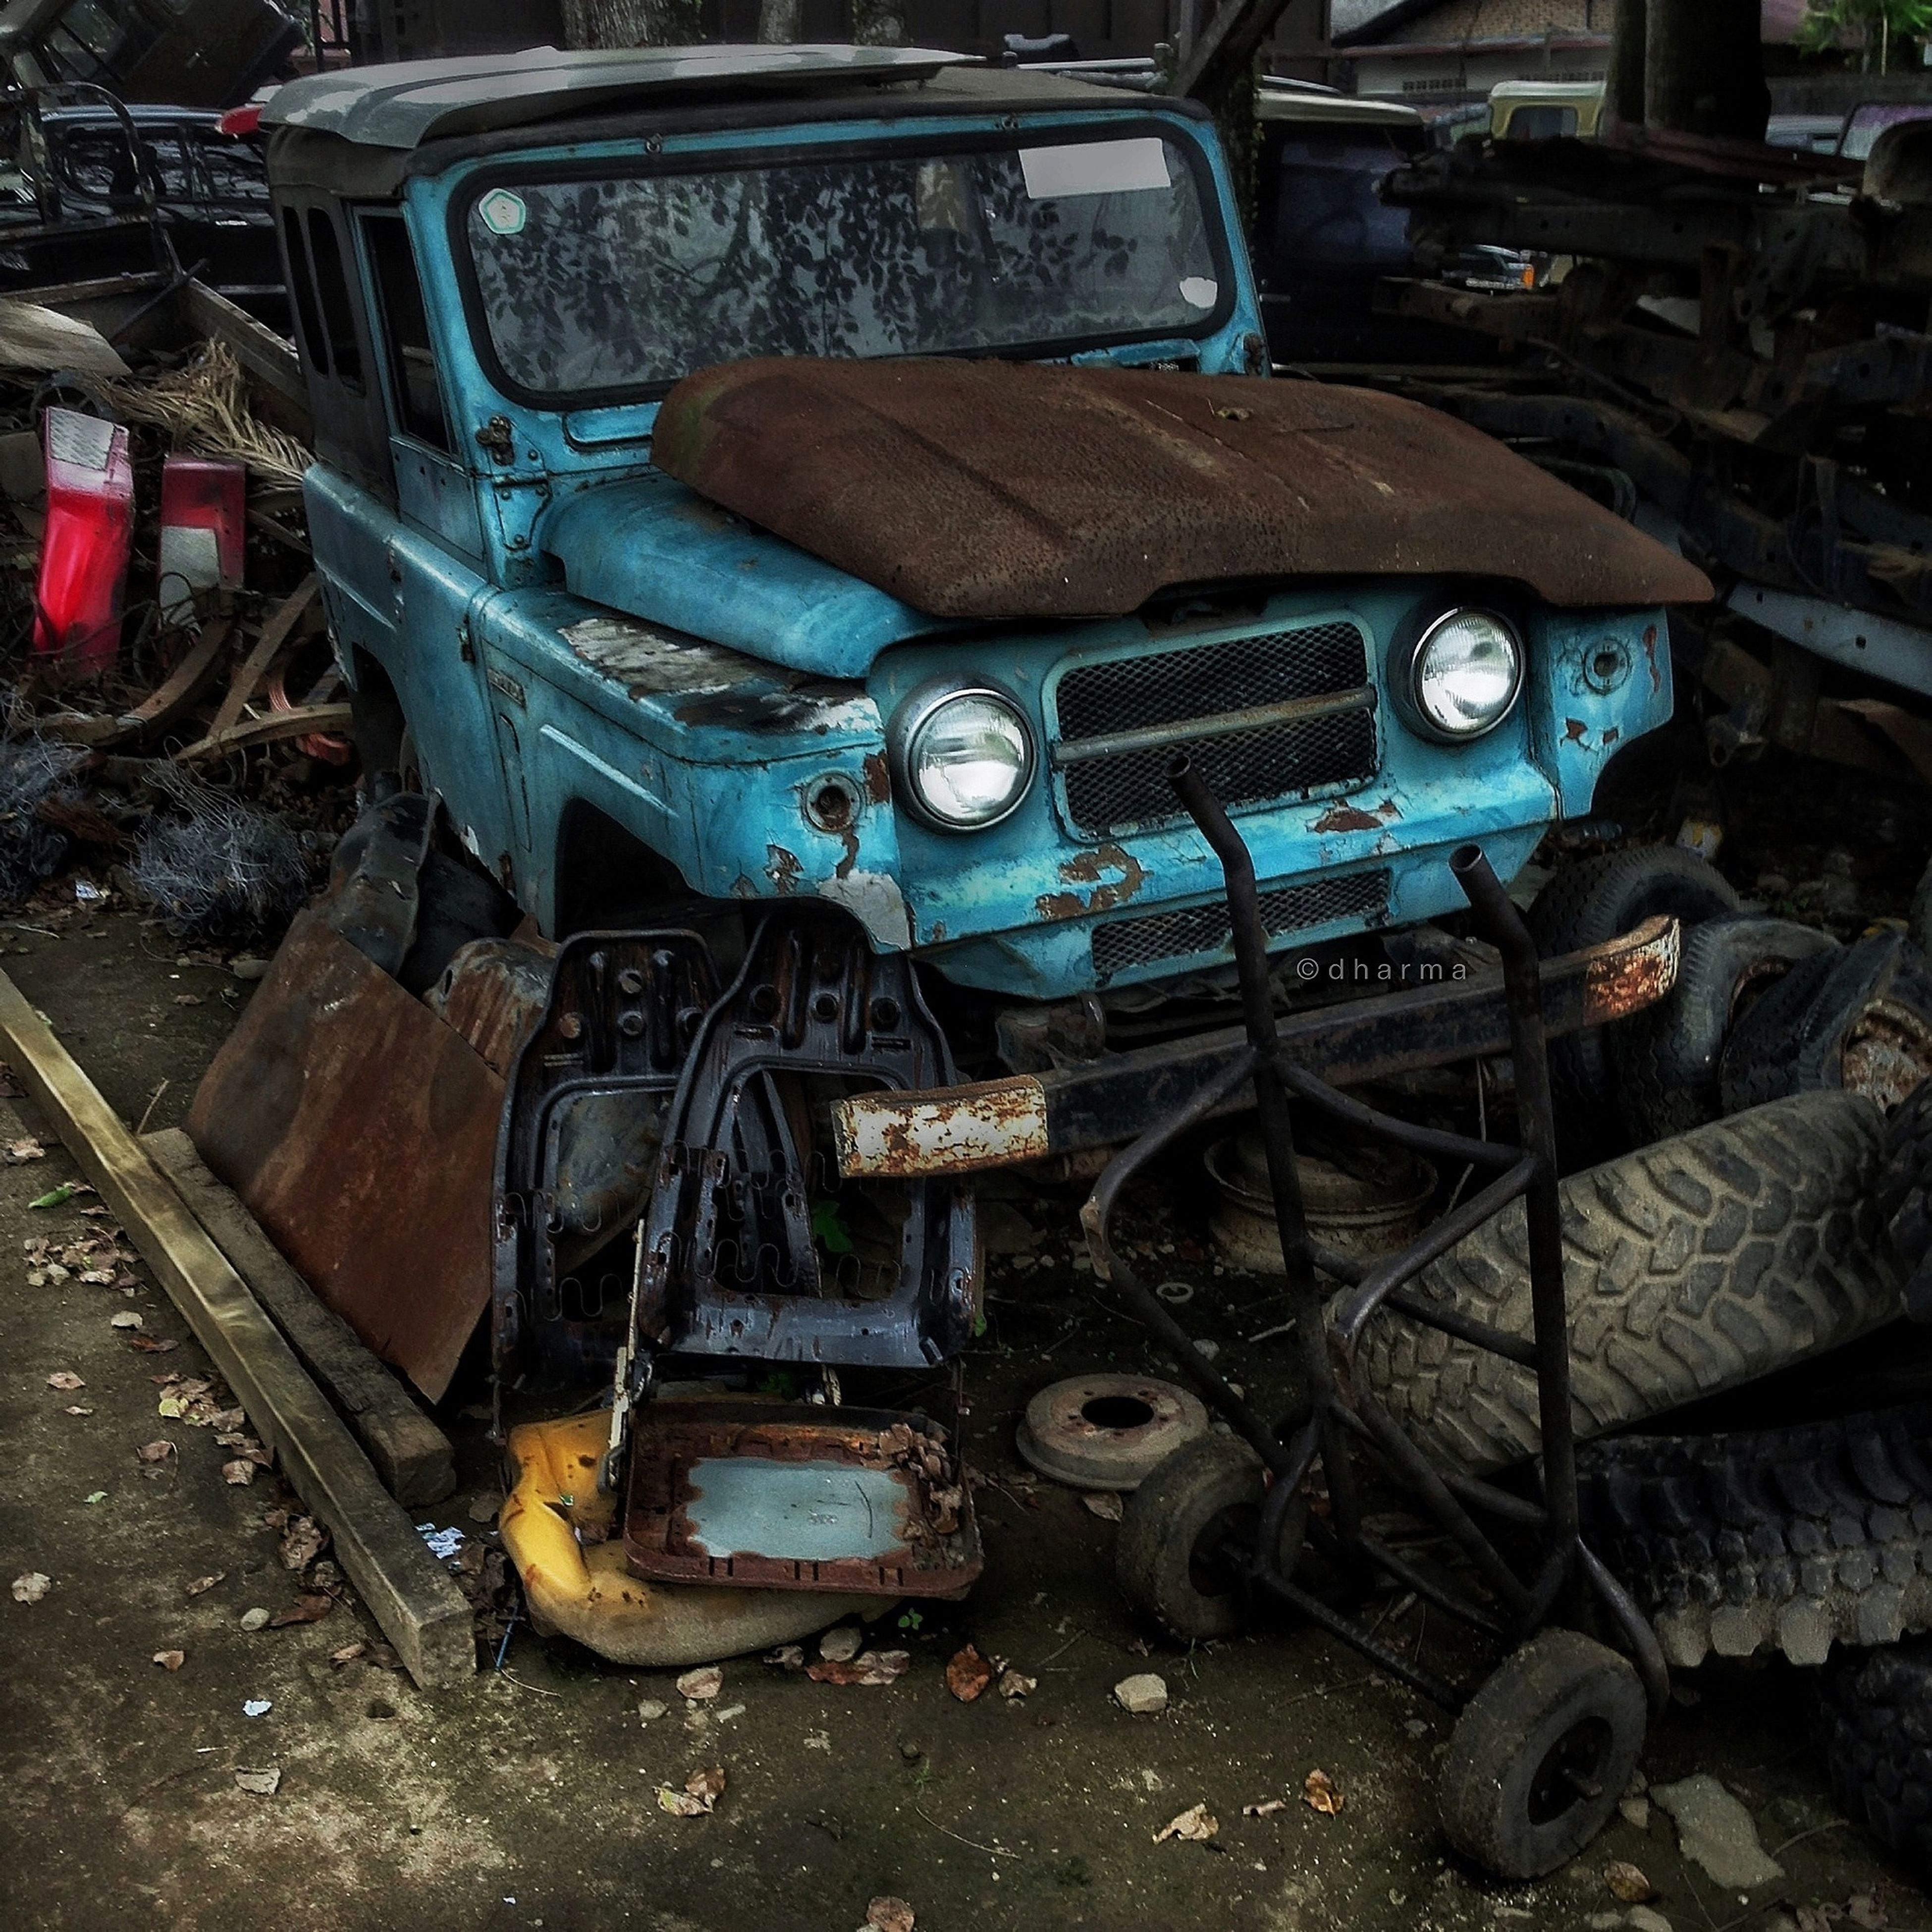 abandoned, transportation, obsolete, mode of transport, land vehicle, damaged, run-down, old, deterioration, industry, car, machinery, stationary, metal, machine part, messy, construction site, day, factory, high angle view